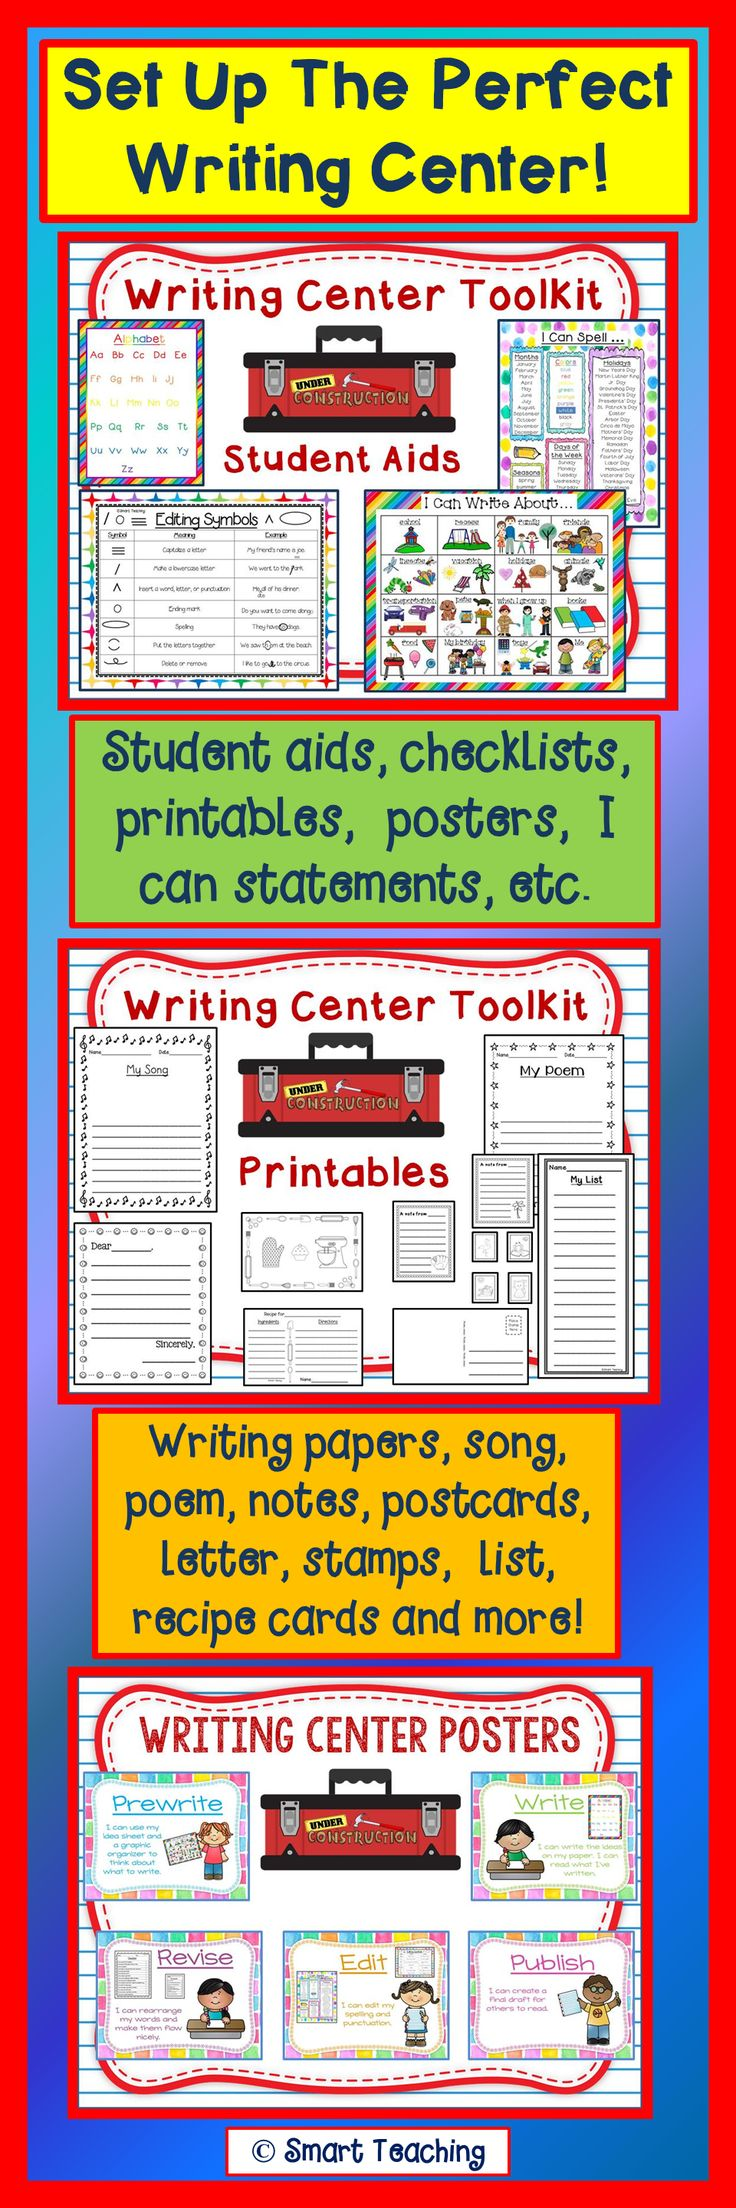 Set up your writing center the easy way! Cards, postcards, stamps, lists, notes, poem, letter, recipe card, checklists, posters, I can statements, and student aids are all included in this amazing package! $